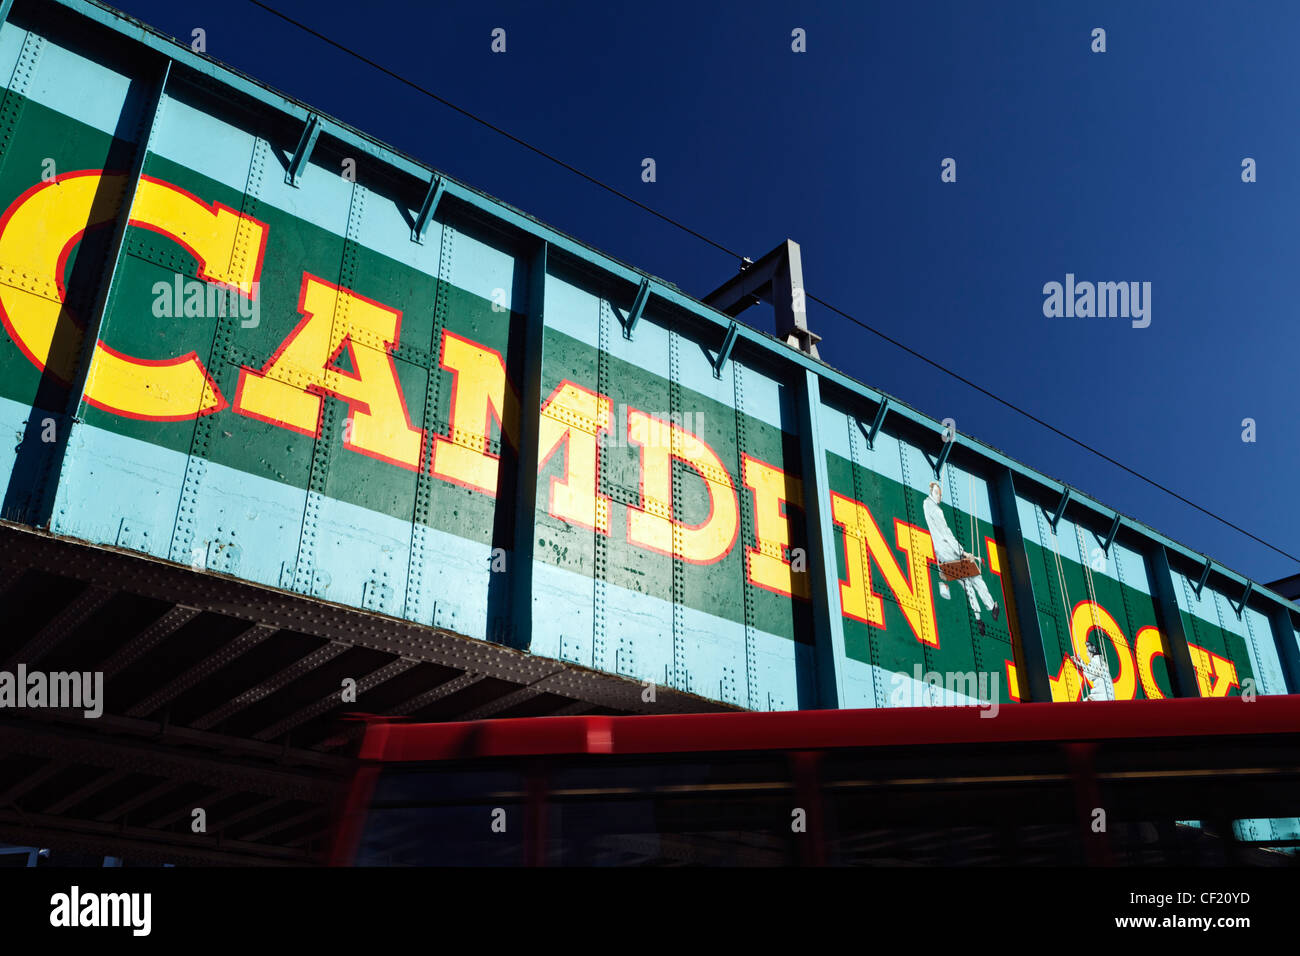 A red double decker bus passing under the old railway bridge over Chalk Farm Road at Camden Lock. The bridge features Stock Photo